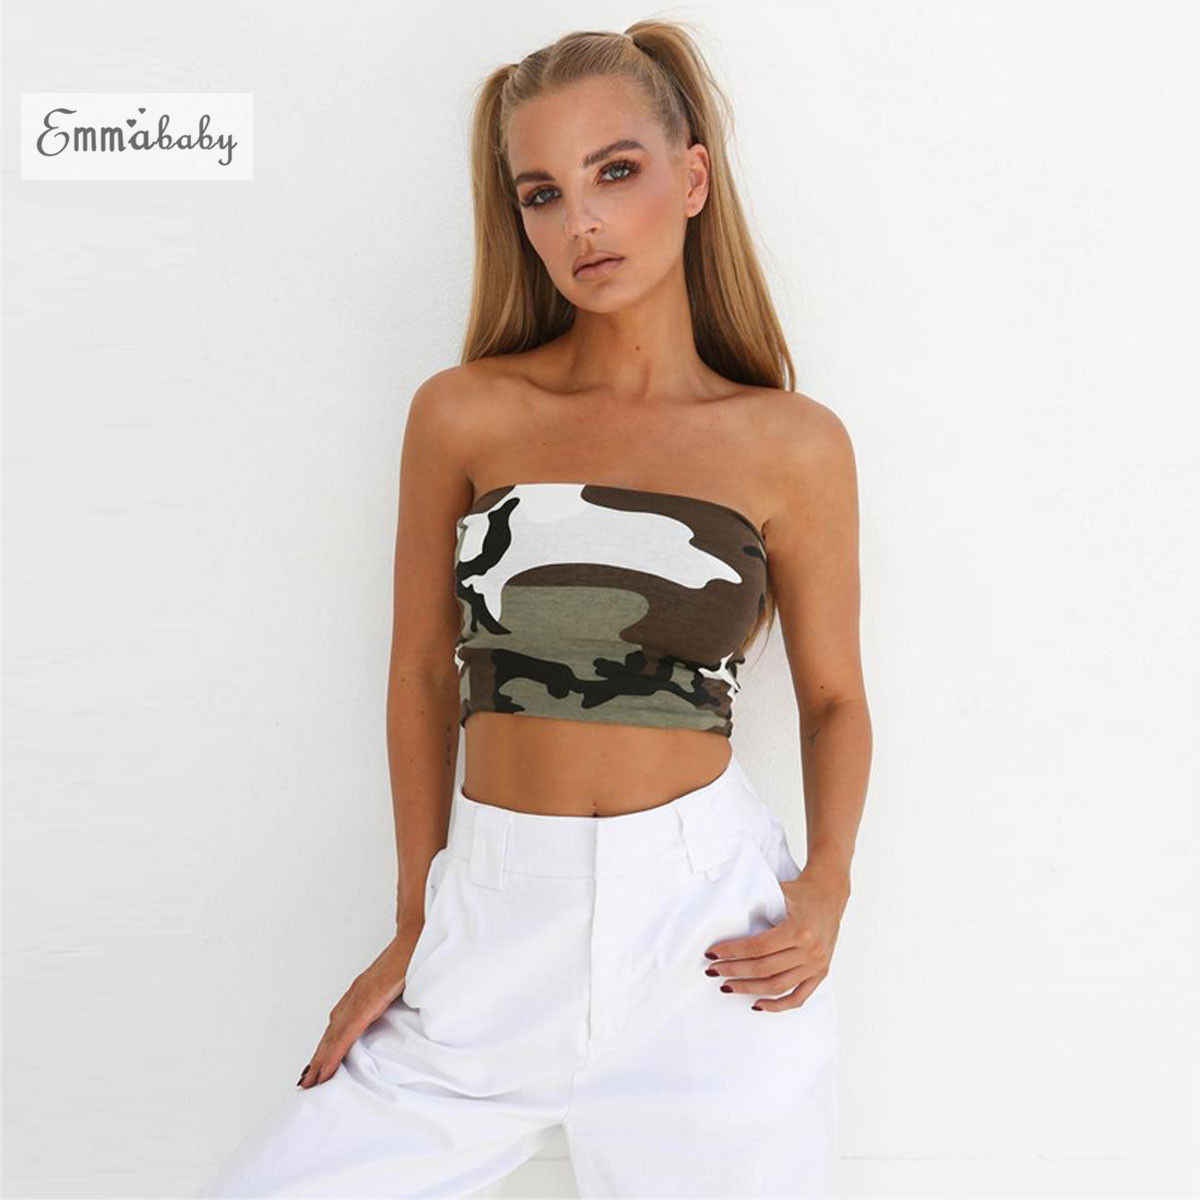 aa7f7ac4f8 New Womens Ladies Sleeveless Tank Tops Plain Printed Boob Tube Strapless  Bandeau Stretch Vest Ladies Camo